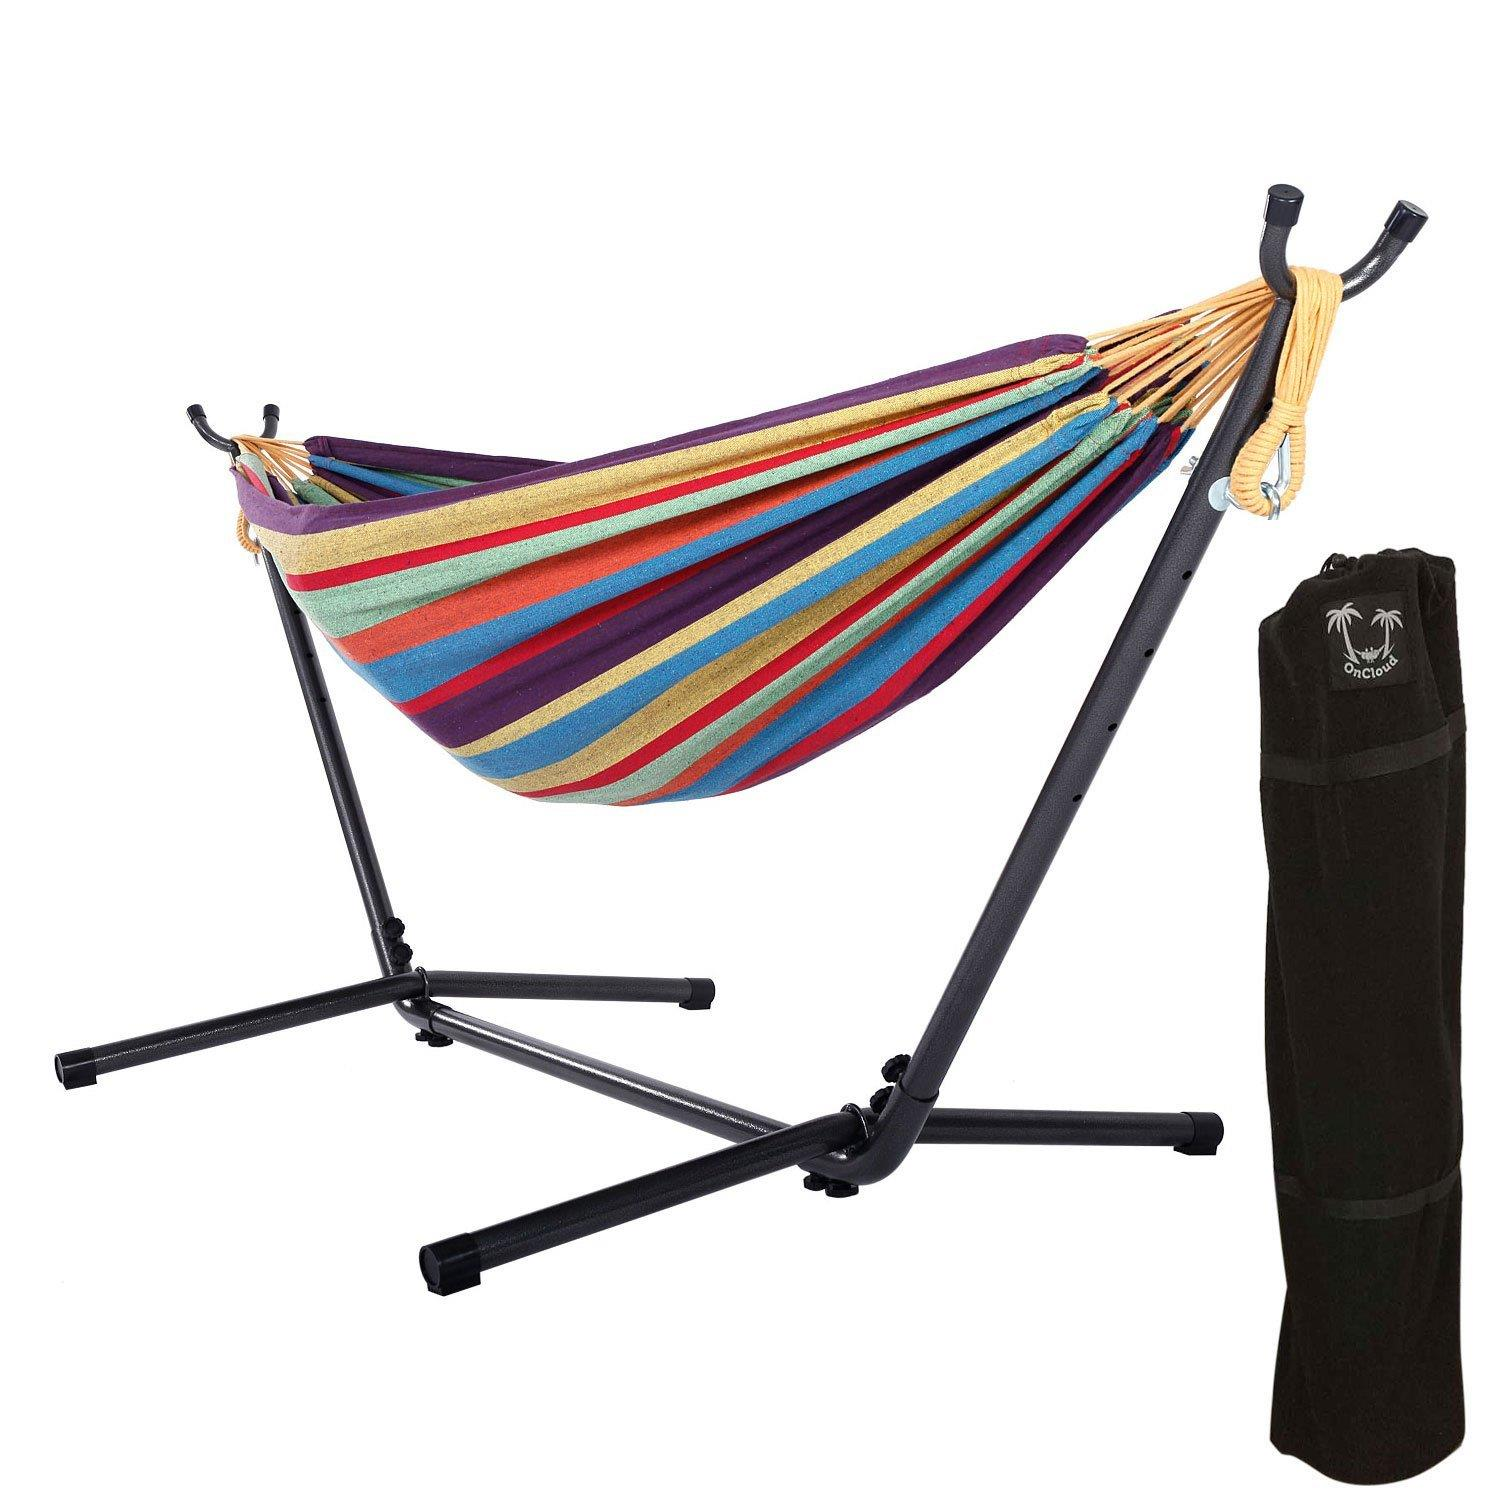 Ktaxon Double Hammock with Steel Stand and Portable Carrying Bag Included,Summer Outdoor Relax,Bear Up To 200Kg